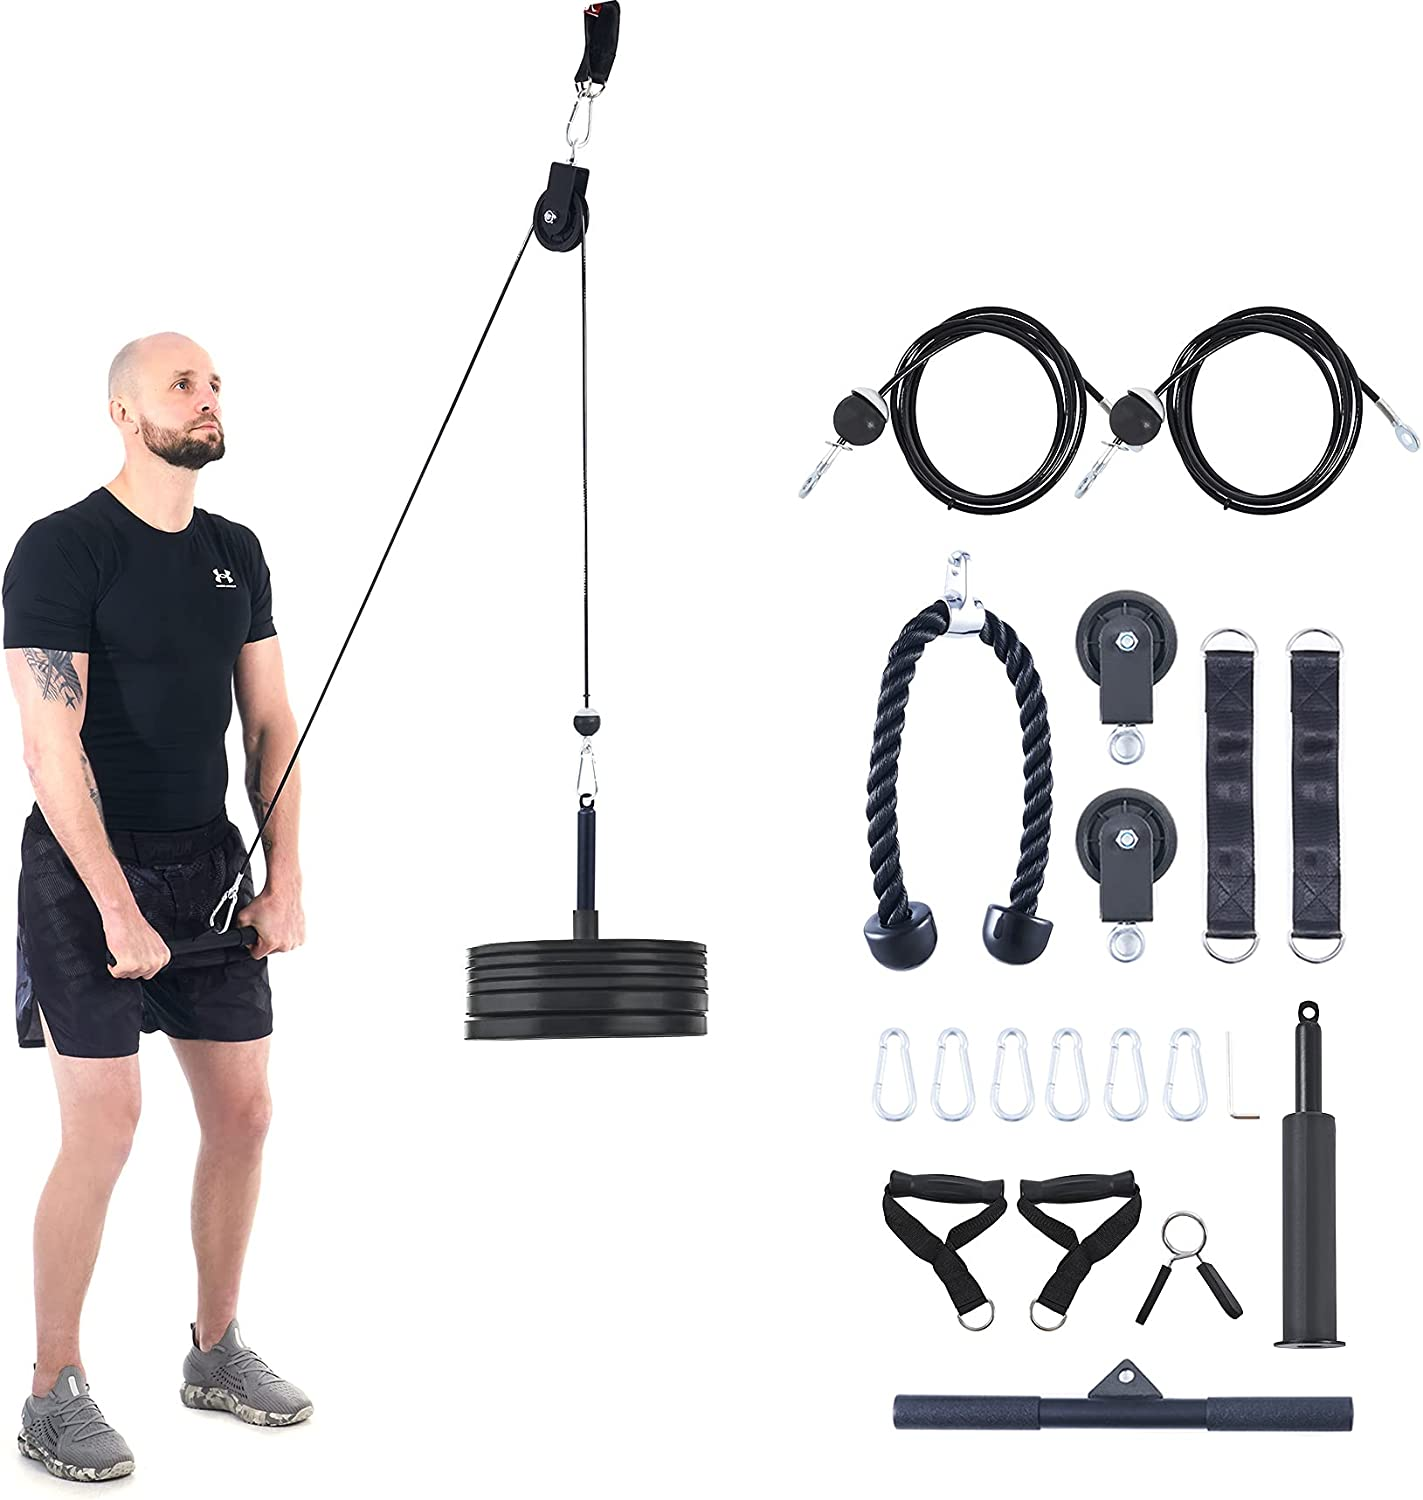 ZELUS 19pc Cable Machine Set w Pulleys, Tricep Rope, Handles, Bar, Sleeved Loading Pin, Straps, & More   LAT Pulley System for Home Strength Training   Cable Workout Equipment for Home Gym, 220lb Cap